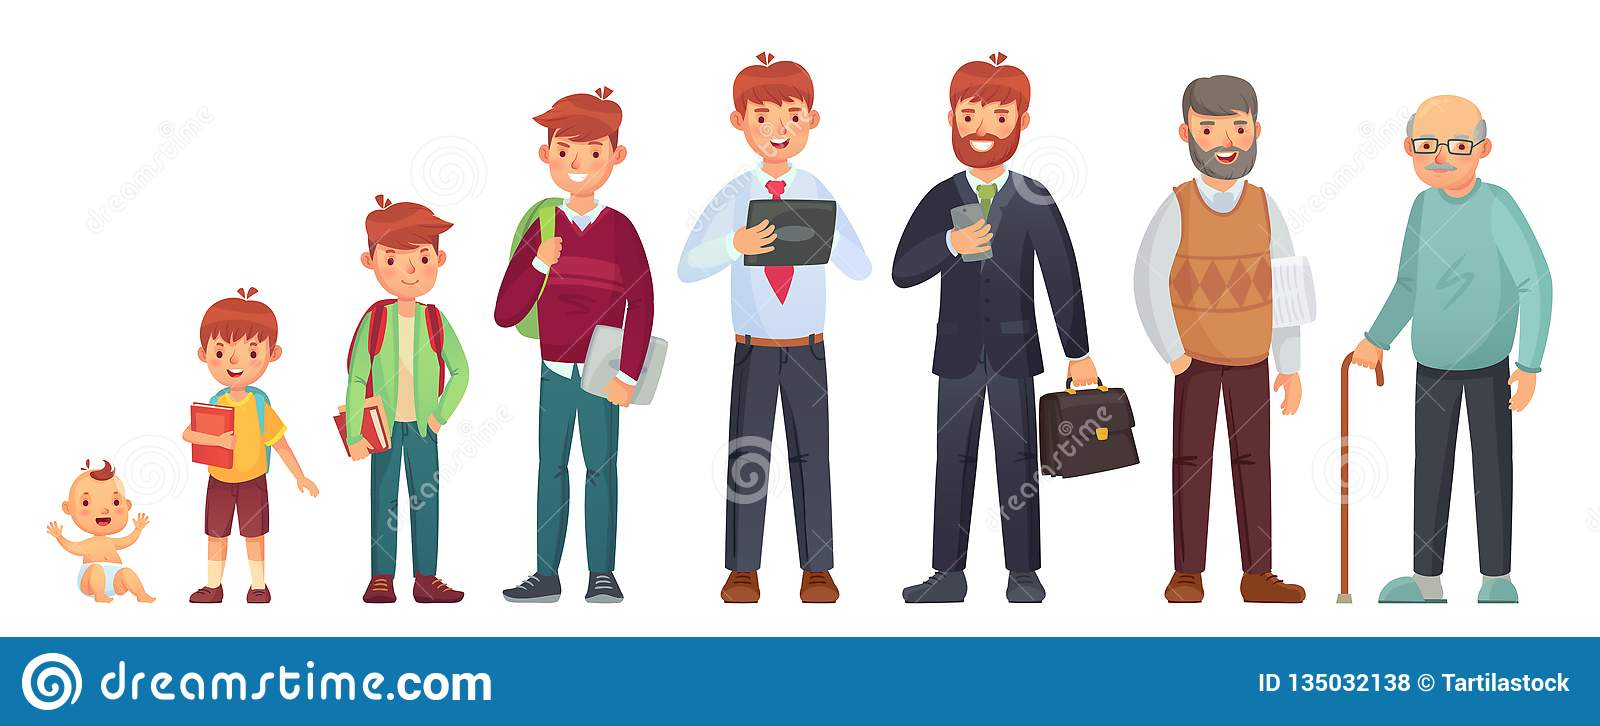 Male different age. Newborn baby, teenage boy and student ages, adult man and old senior. People generations vector